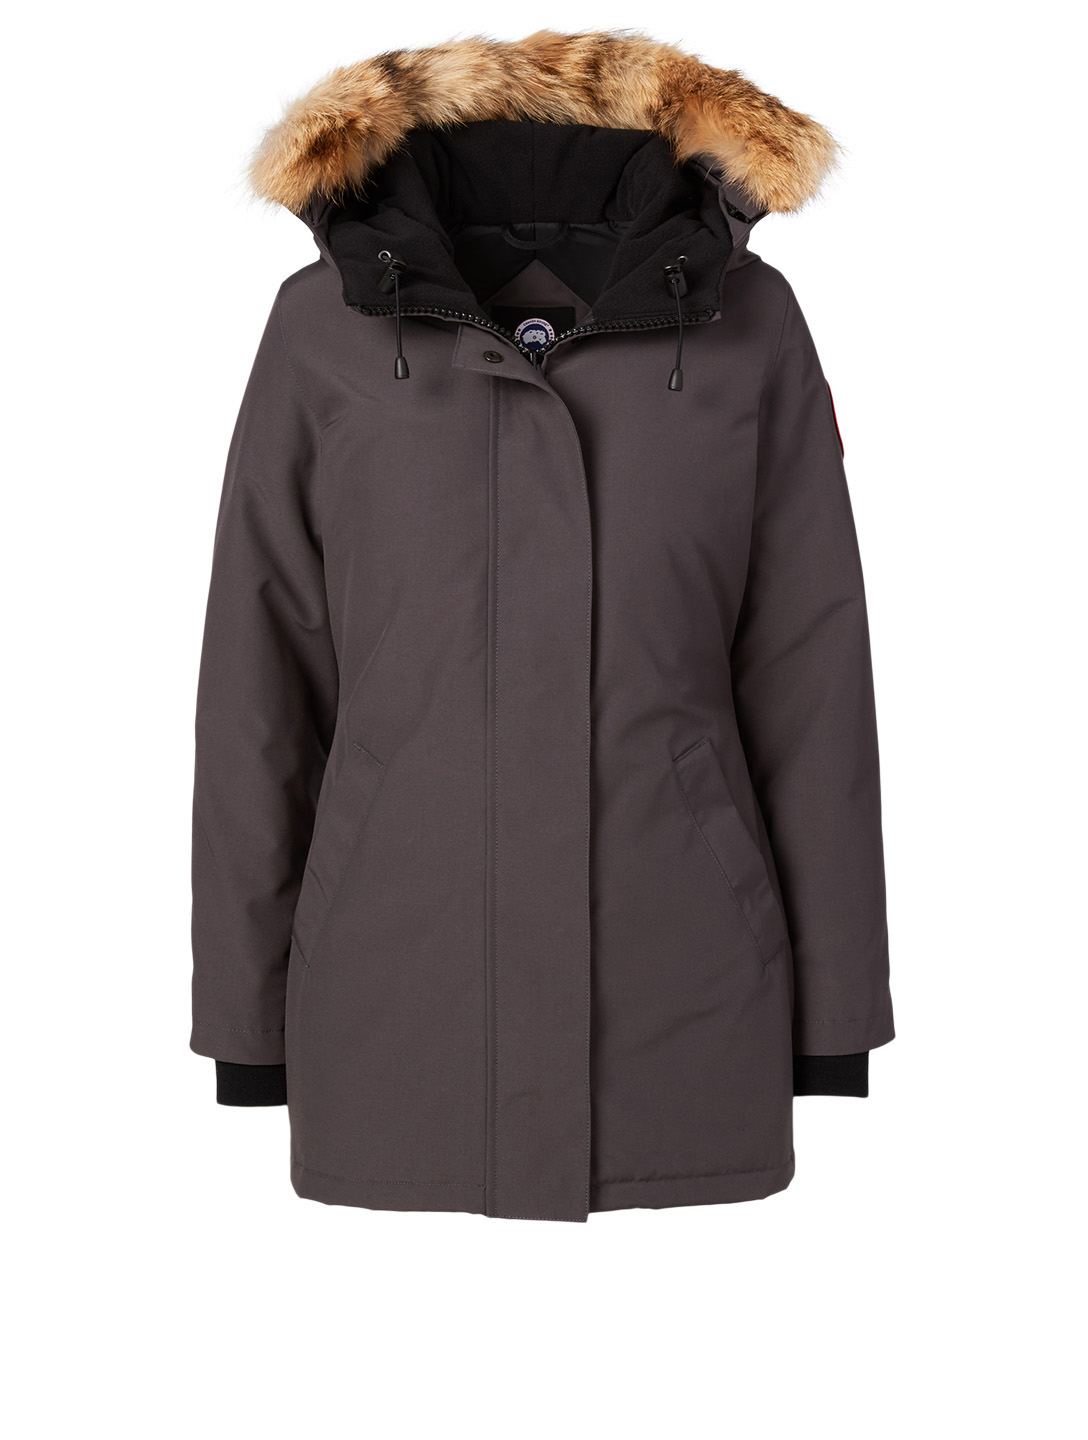 CANADA GOOSE Victoria Down Parka With Fur Hood - Fusion Fit Women's Grey